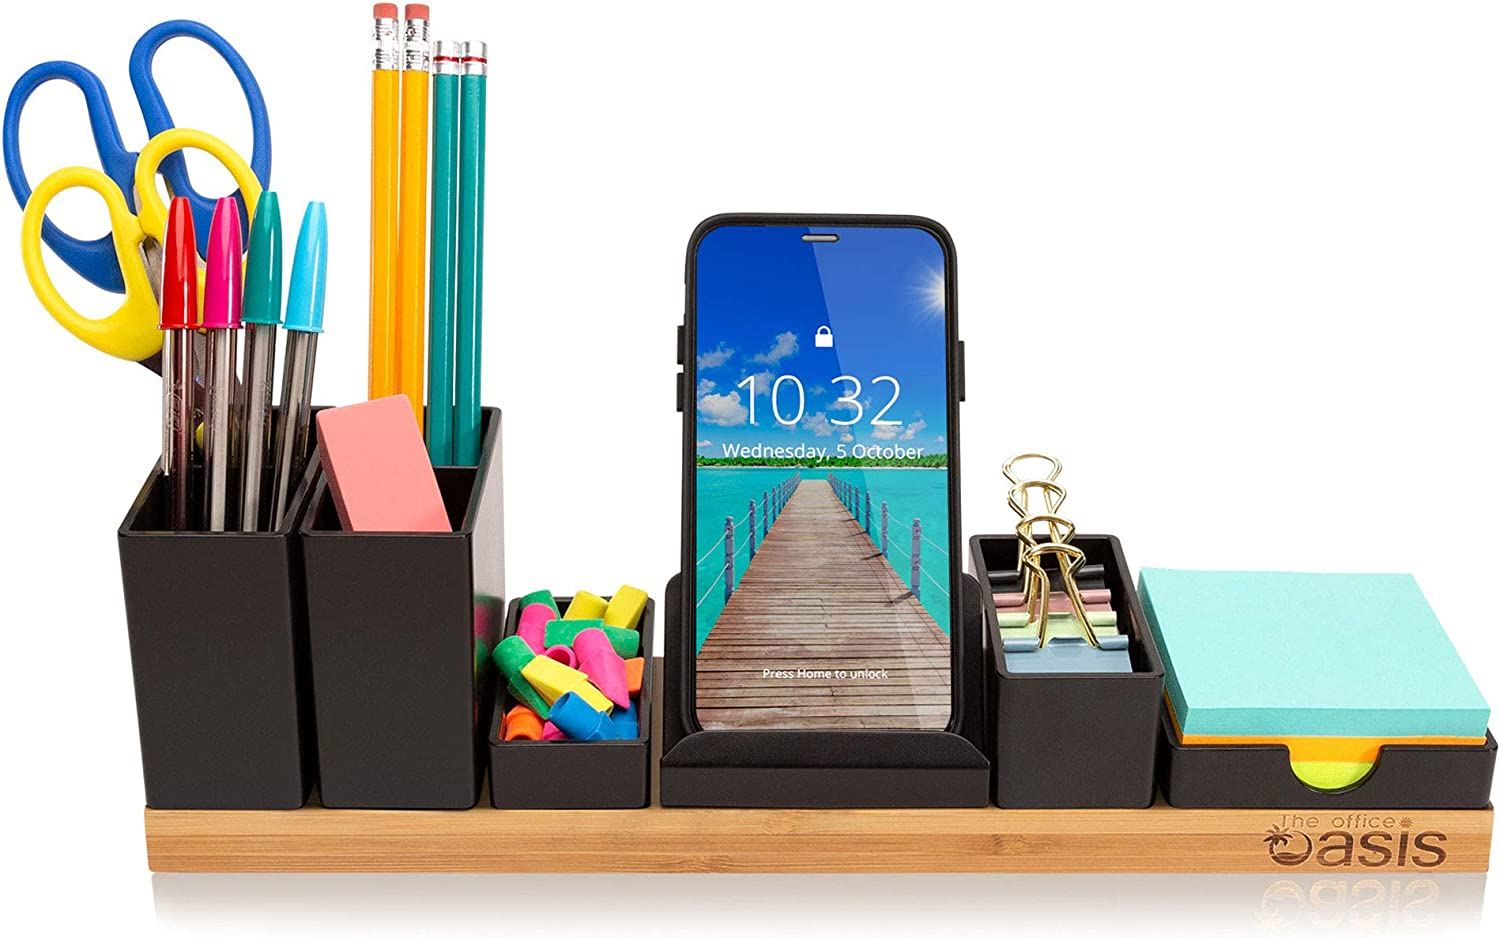 Customizable Desk Organizer - Office Supplies Holder Eliminates Your Desktop Clutter - Revolutionary Storage Caddy for Pens, Pencils, Phone and Accessories (Natural)